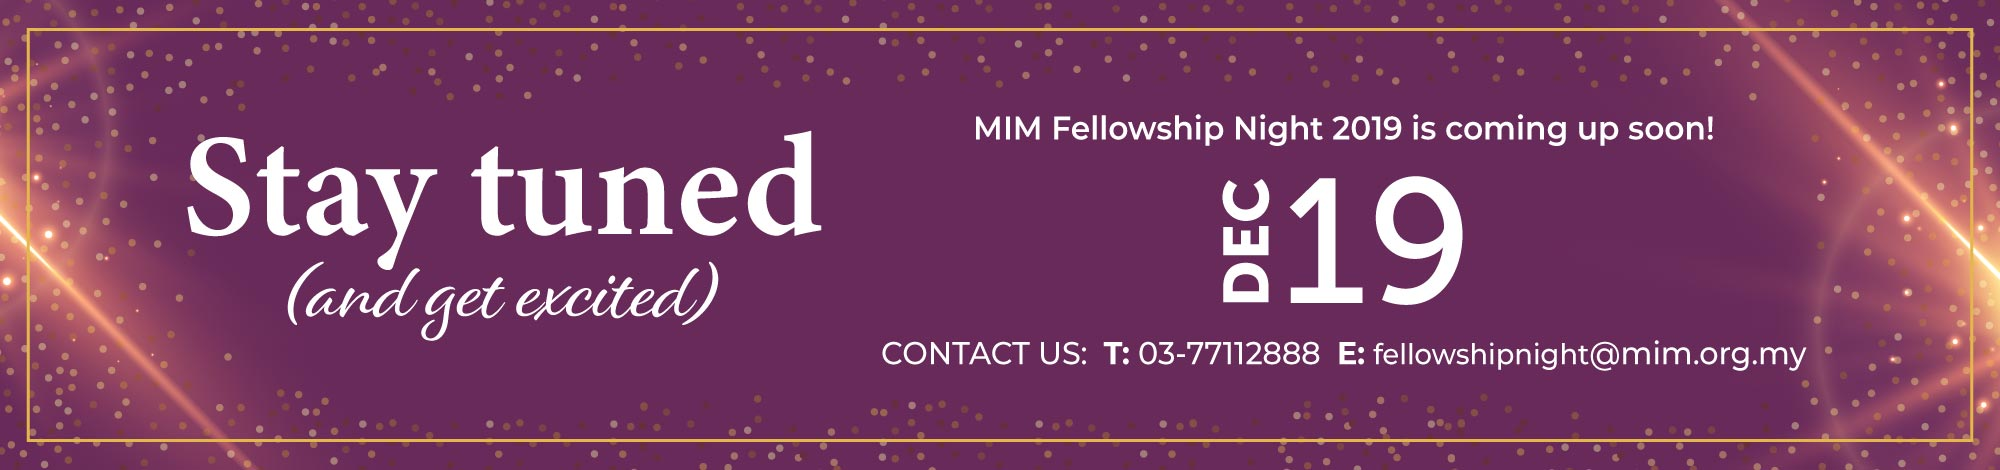 MIM_FellowshipNight-2019_Website